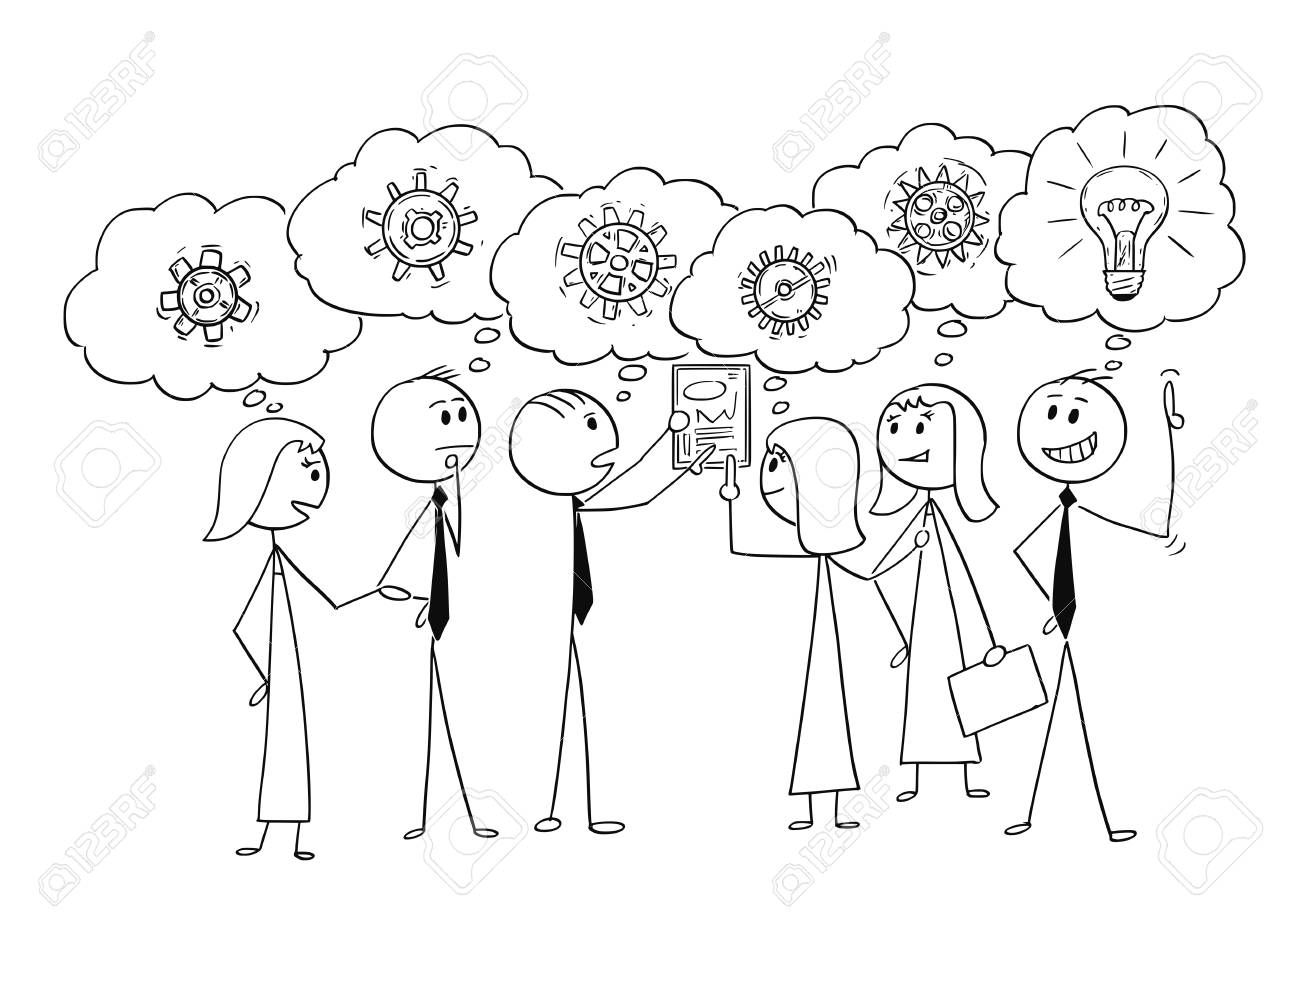 Cartoon stick man drawing conceptual illustration of business team or group of businessmen and businesswomen working together to find problem solution, one Businessman just get the idea. Concept of teamwork and brainstorming. - 96235475